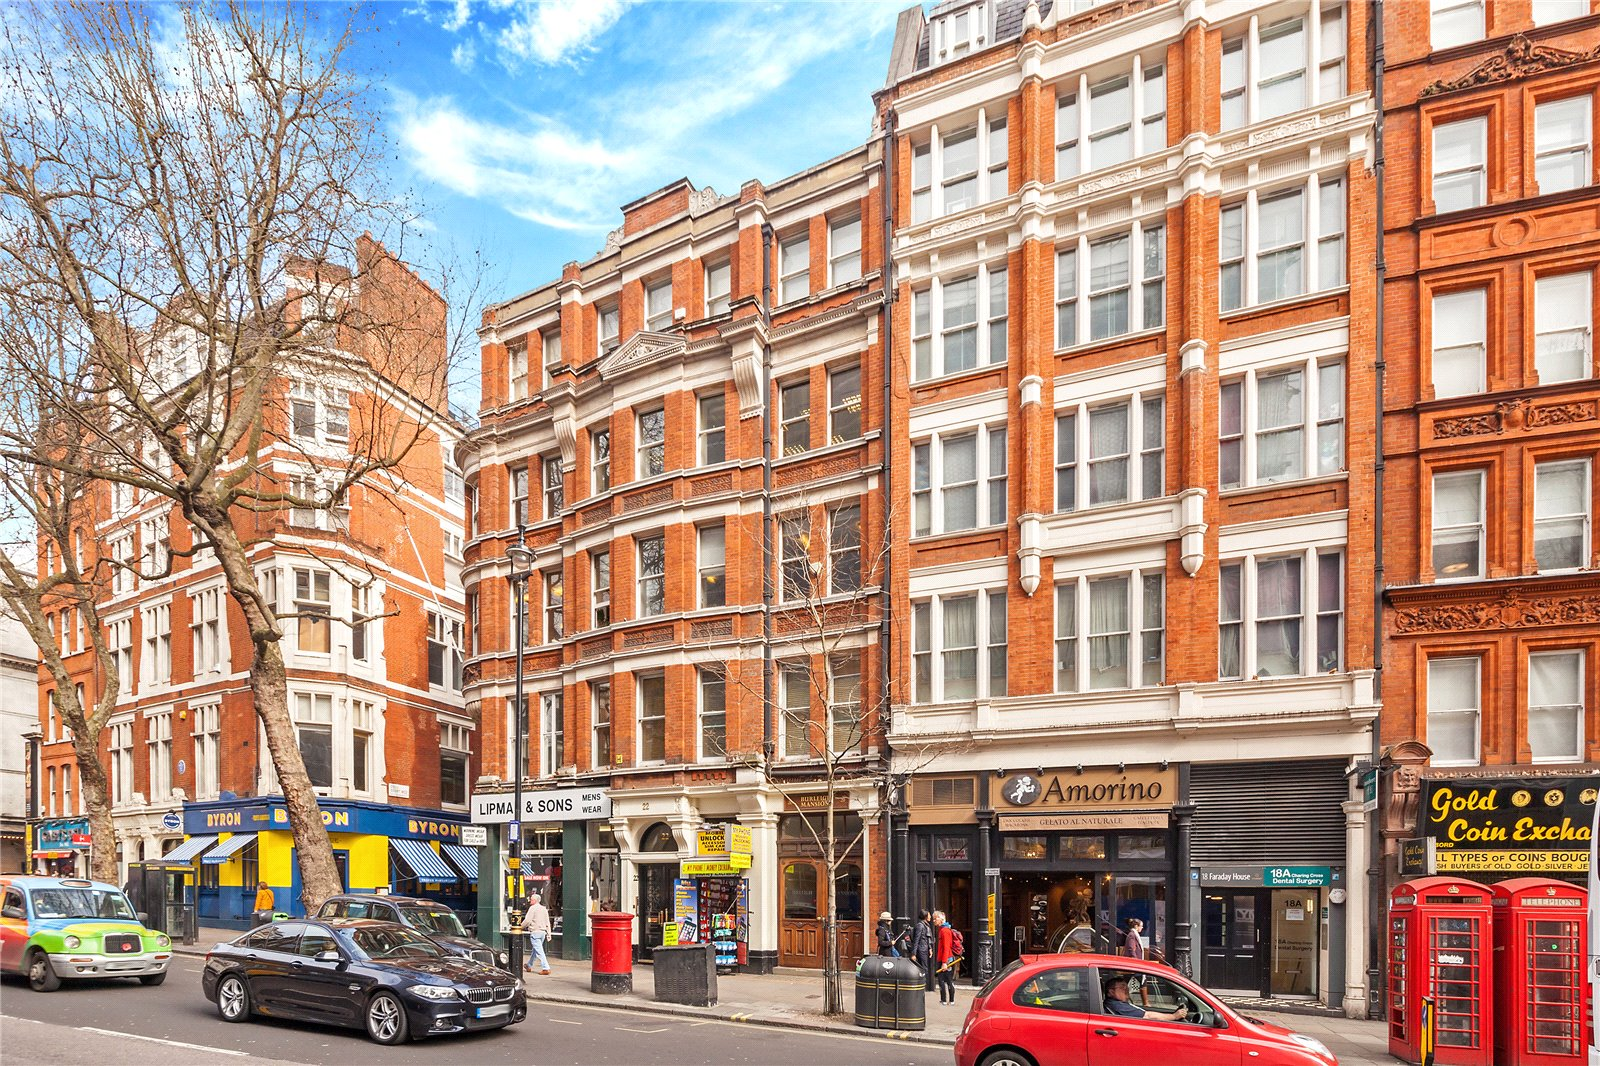 Burleigh Mansions, Covent Garden, WC2H